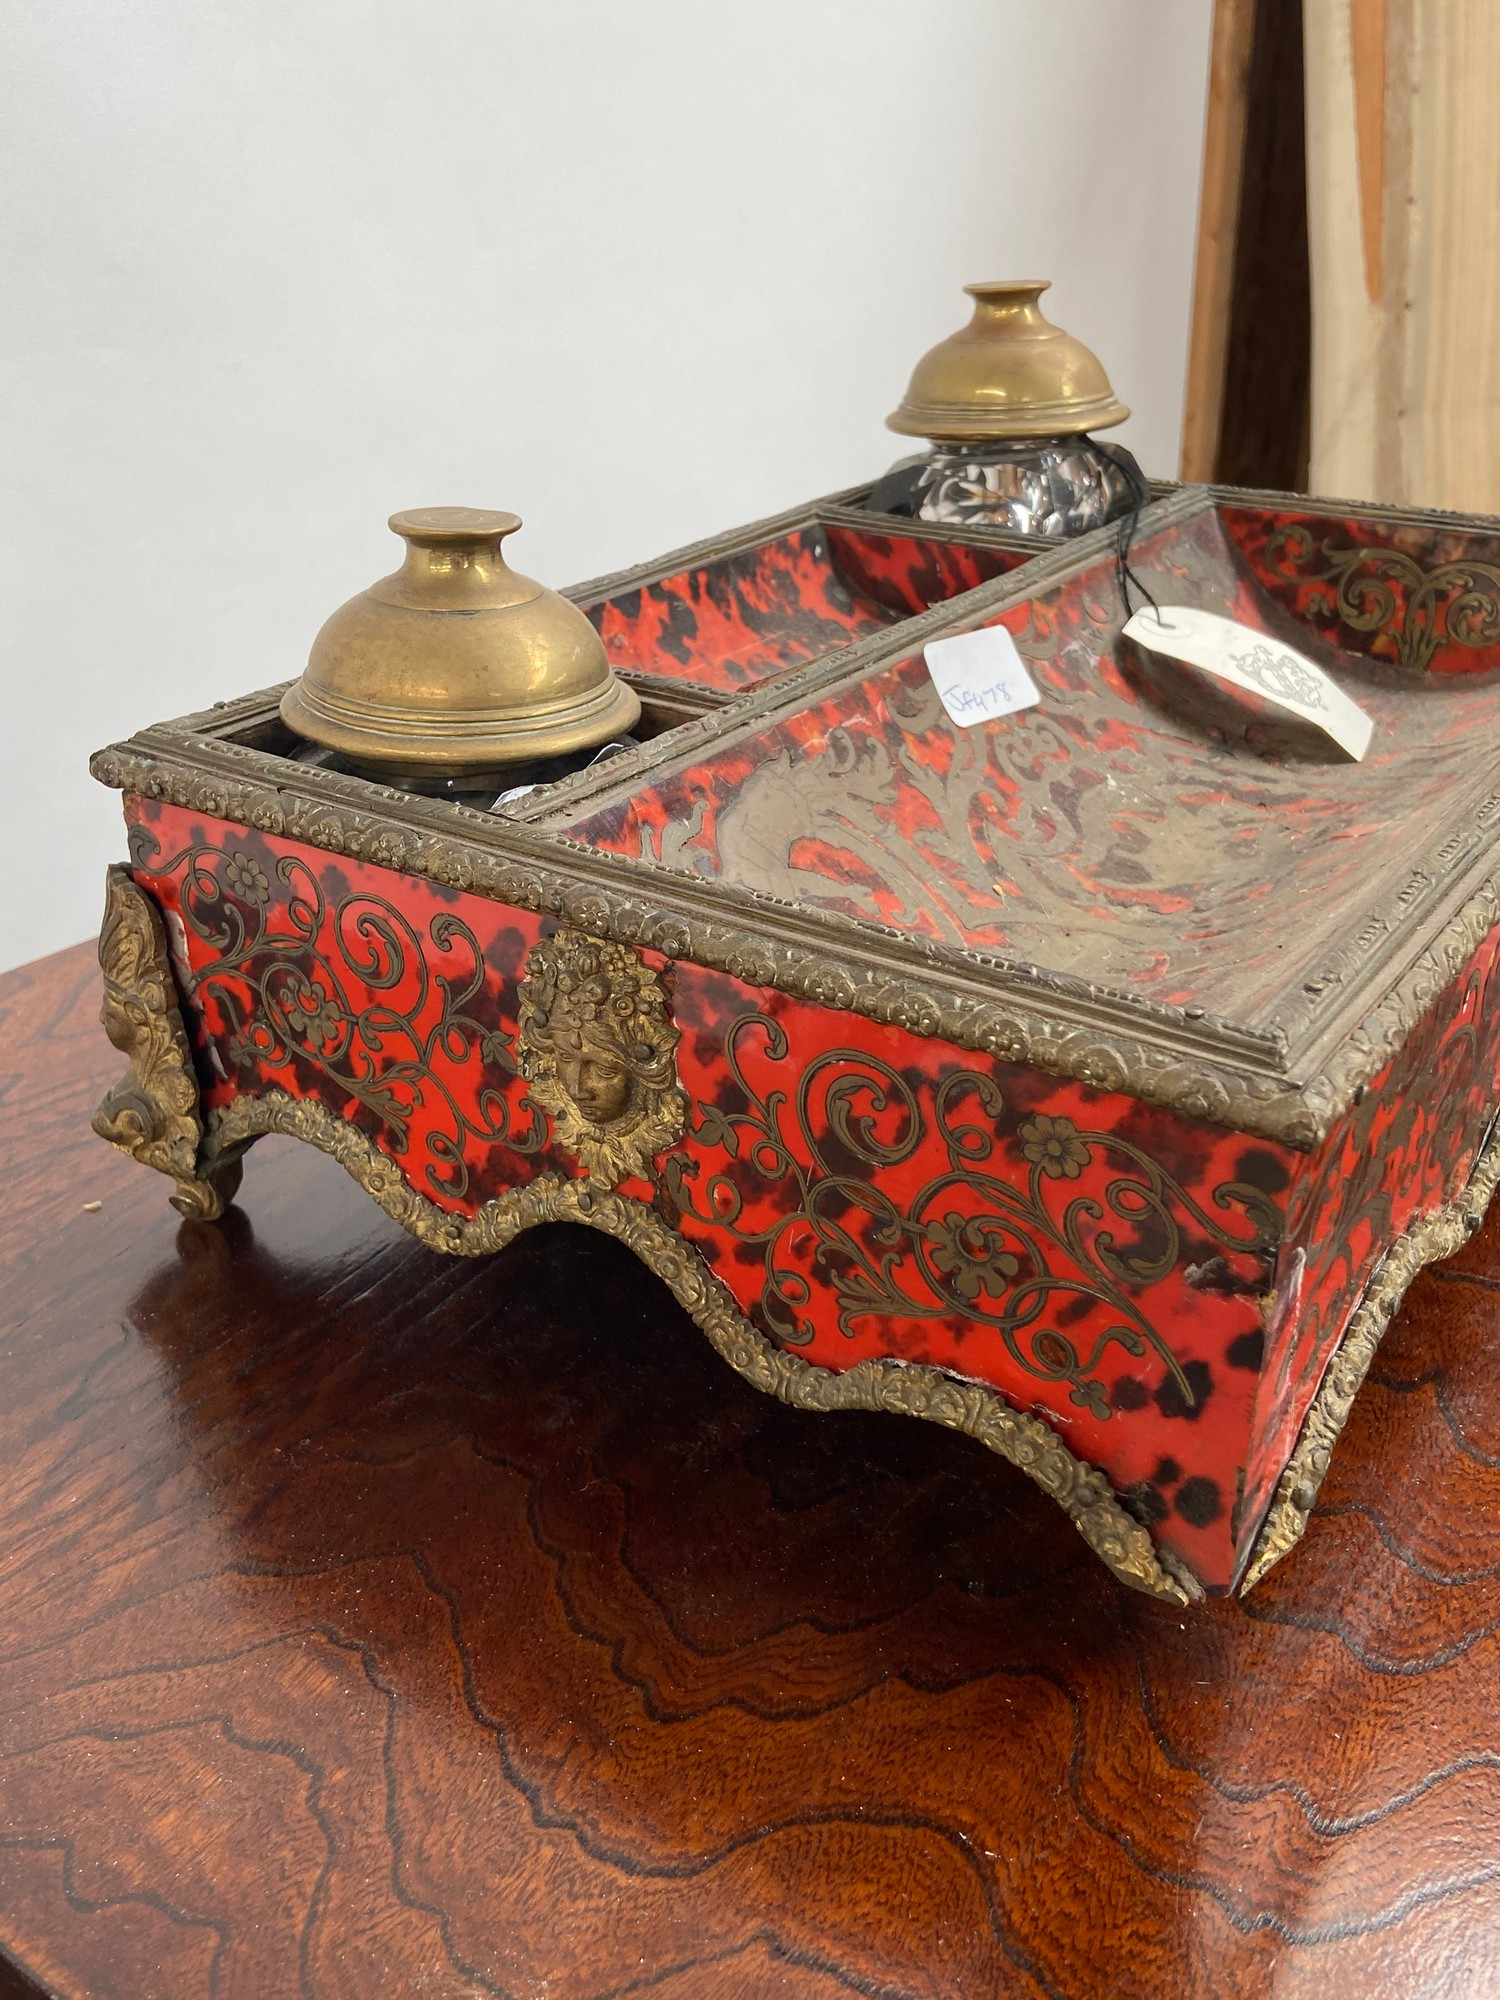 A 19th century French Boulle desk double inkwell stand. [missing a foot] [11x35x26cm] - Image 6 of 6